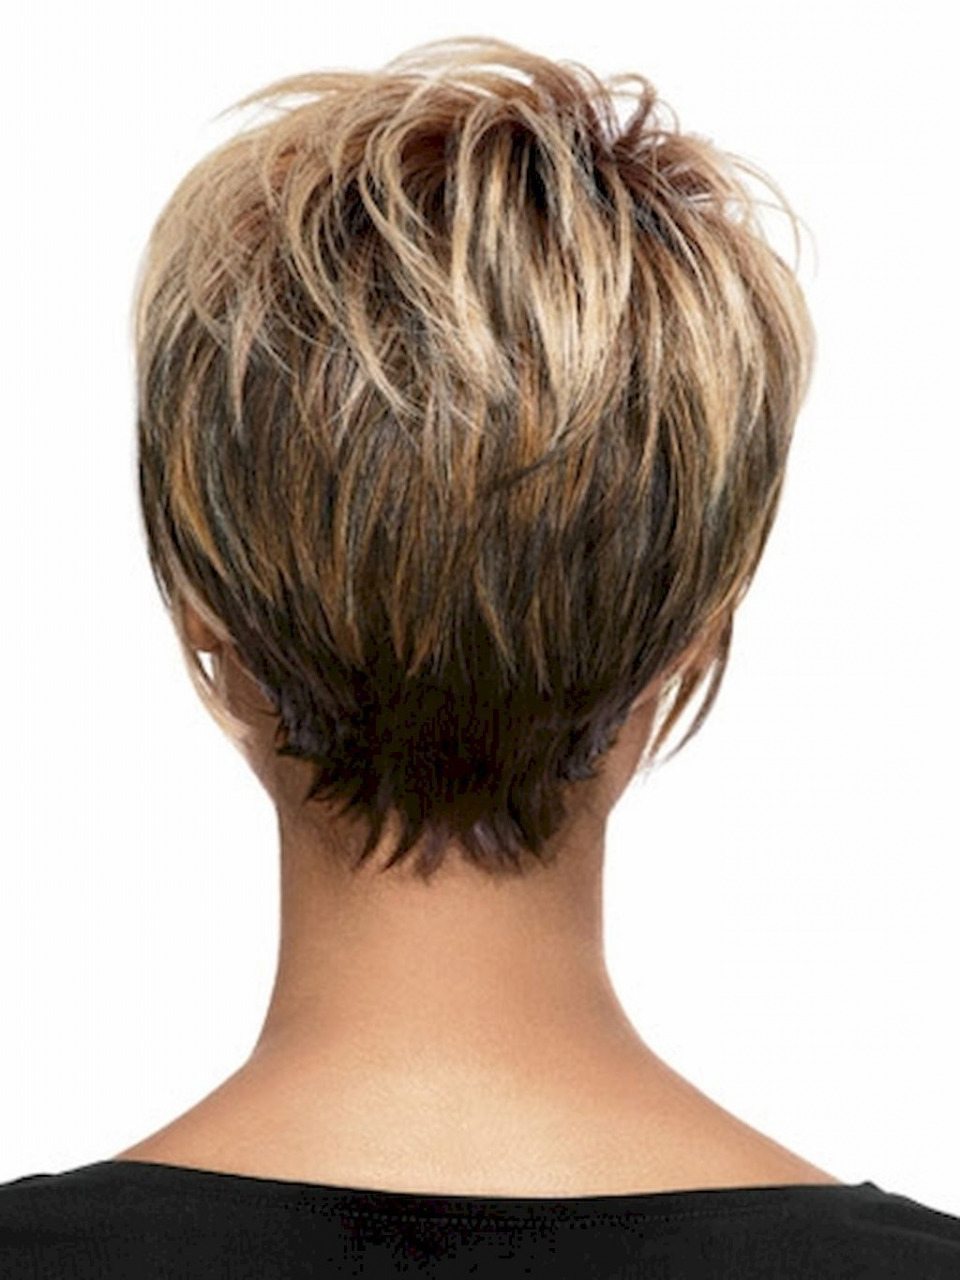 99 Low Maintenance Short Hairstyles New Short Hair Styles From Bobs For Easy Maintenance Short Hairstyles (View 24 of 25)